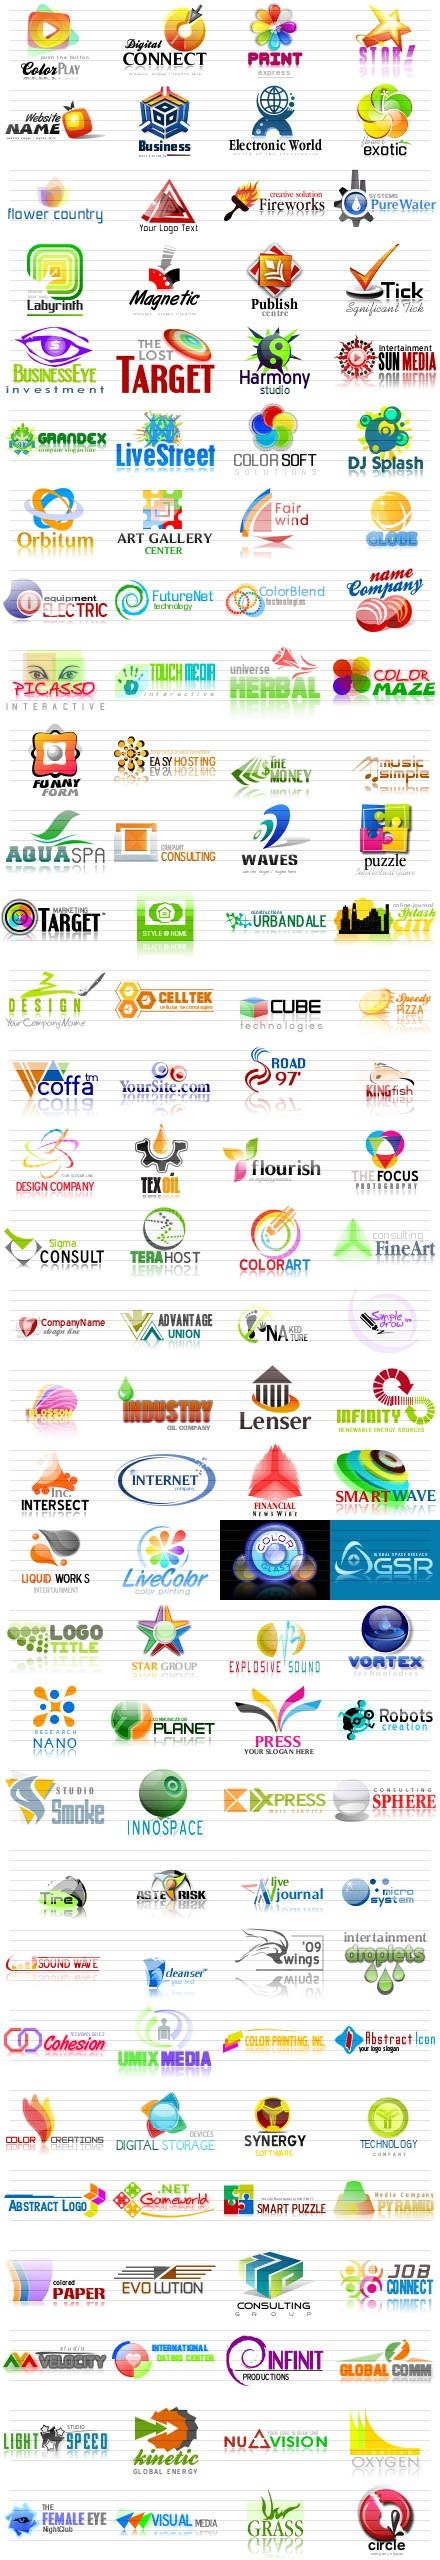 Logosmartz custom logo maker 5 0 review and download - Aaa Logo Maker 4 1 Full Version Pre Activated With Licence Key